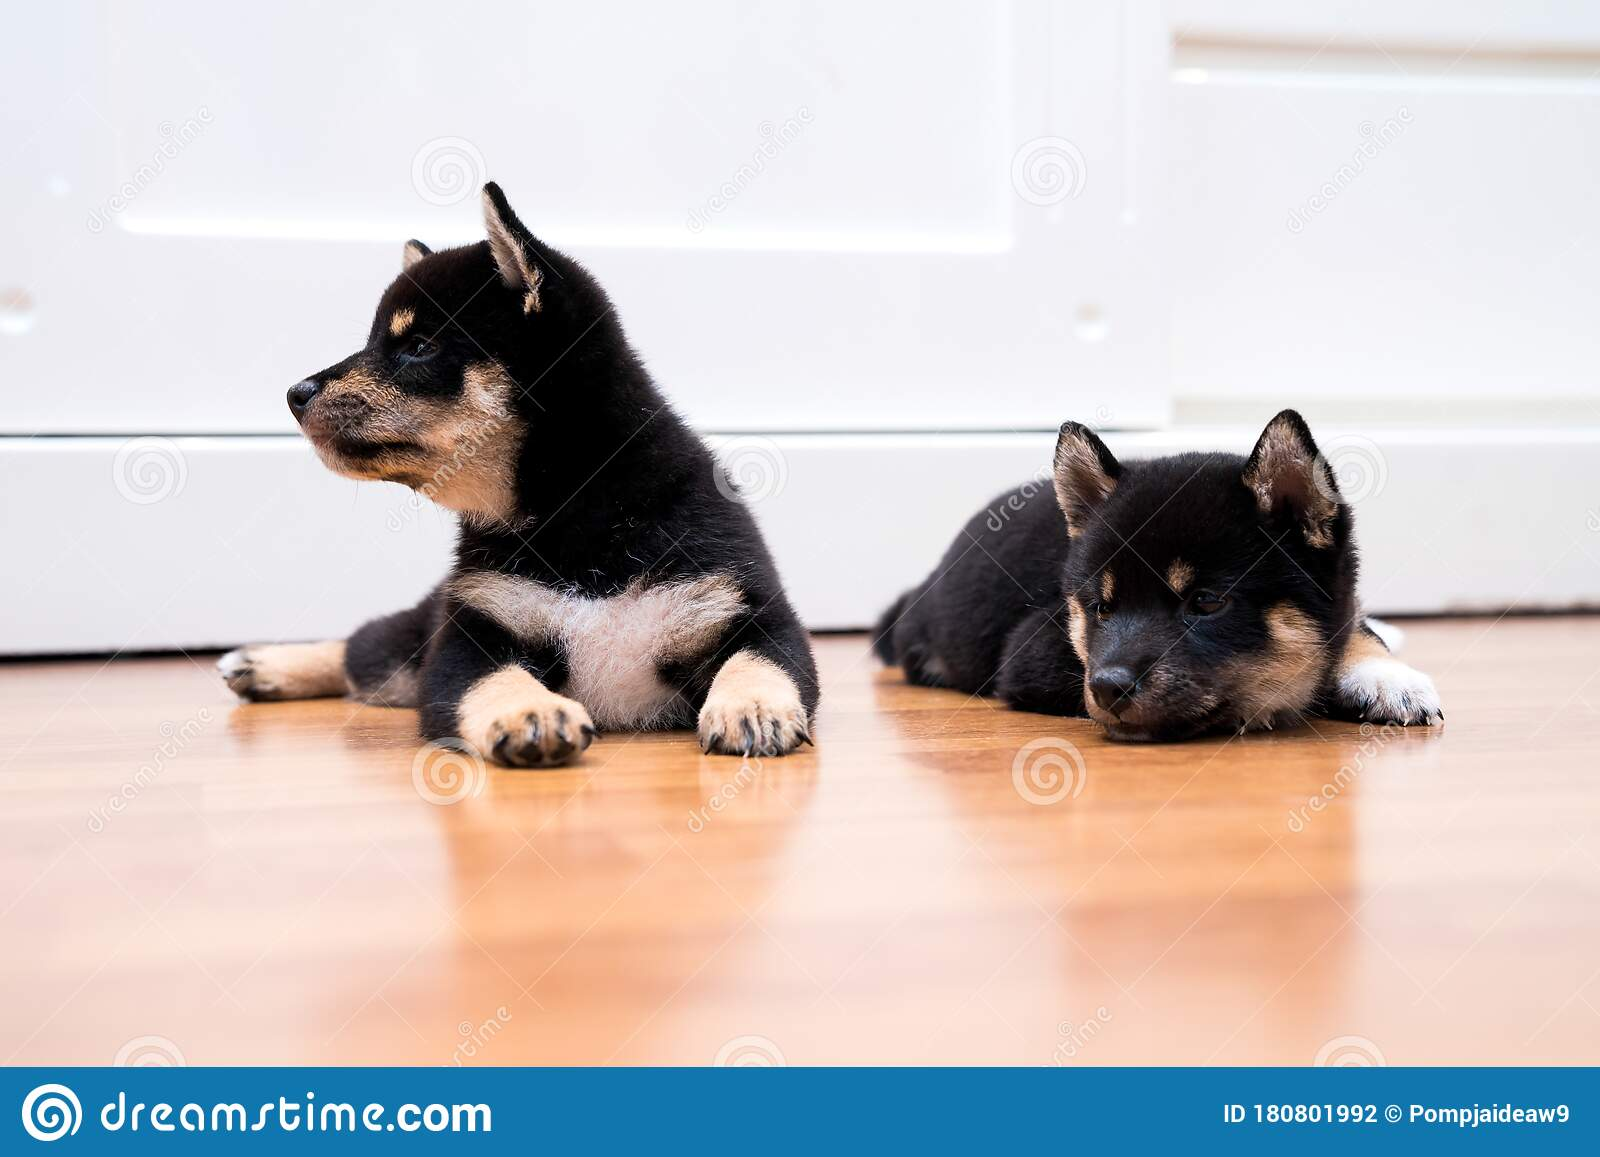 Shiba Inu Puppy Japanese Shiba Inu Dog Beautiful Shiba Inu Puppy Color Black And Tan 35 Day Old Puppy On Wooden Floor Space Stock Photo Image Of Animal Pedigree 180801992